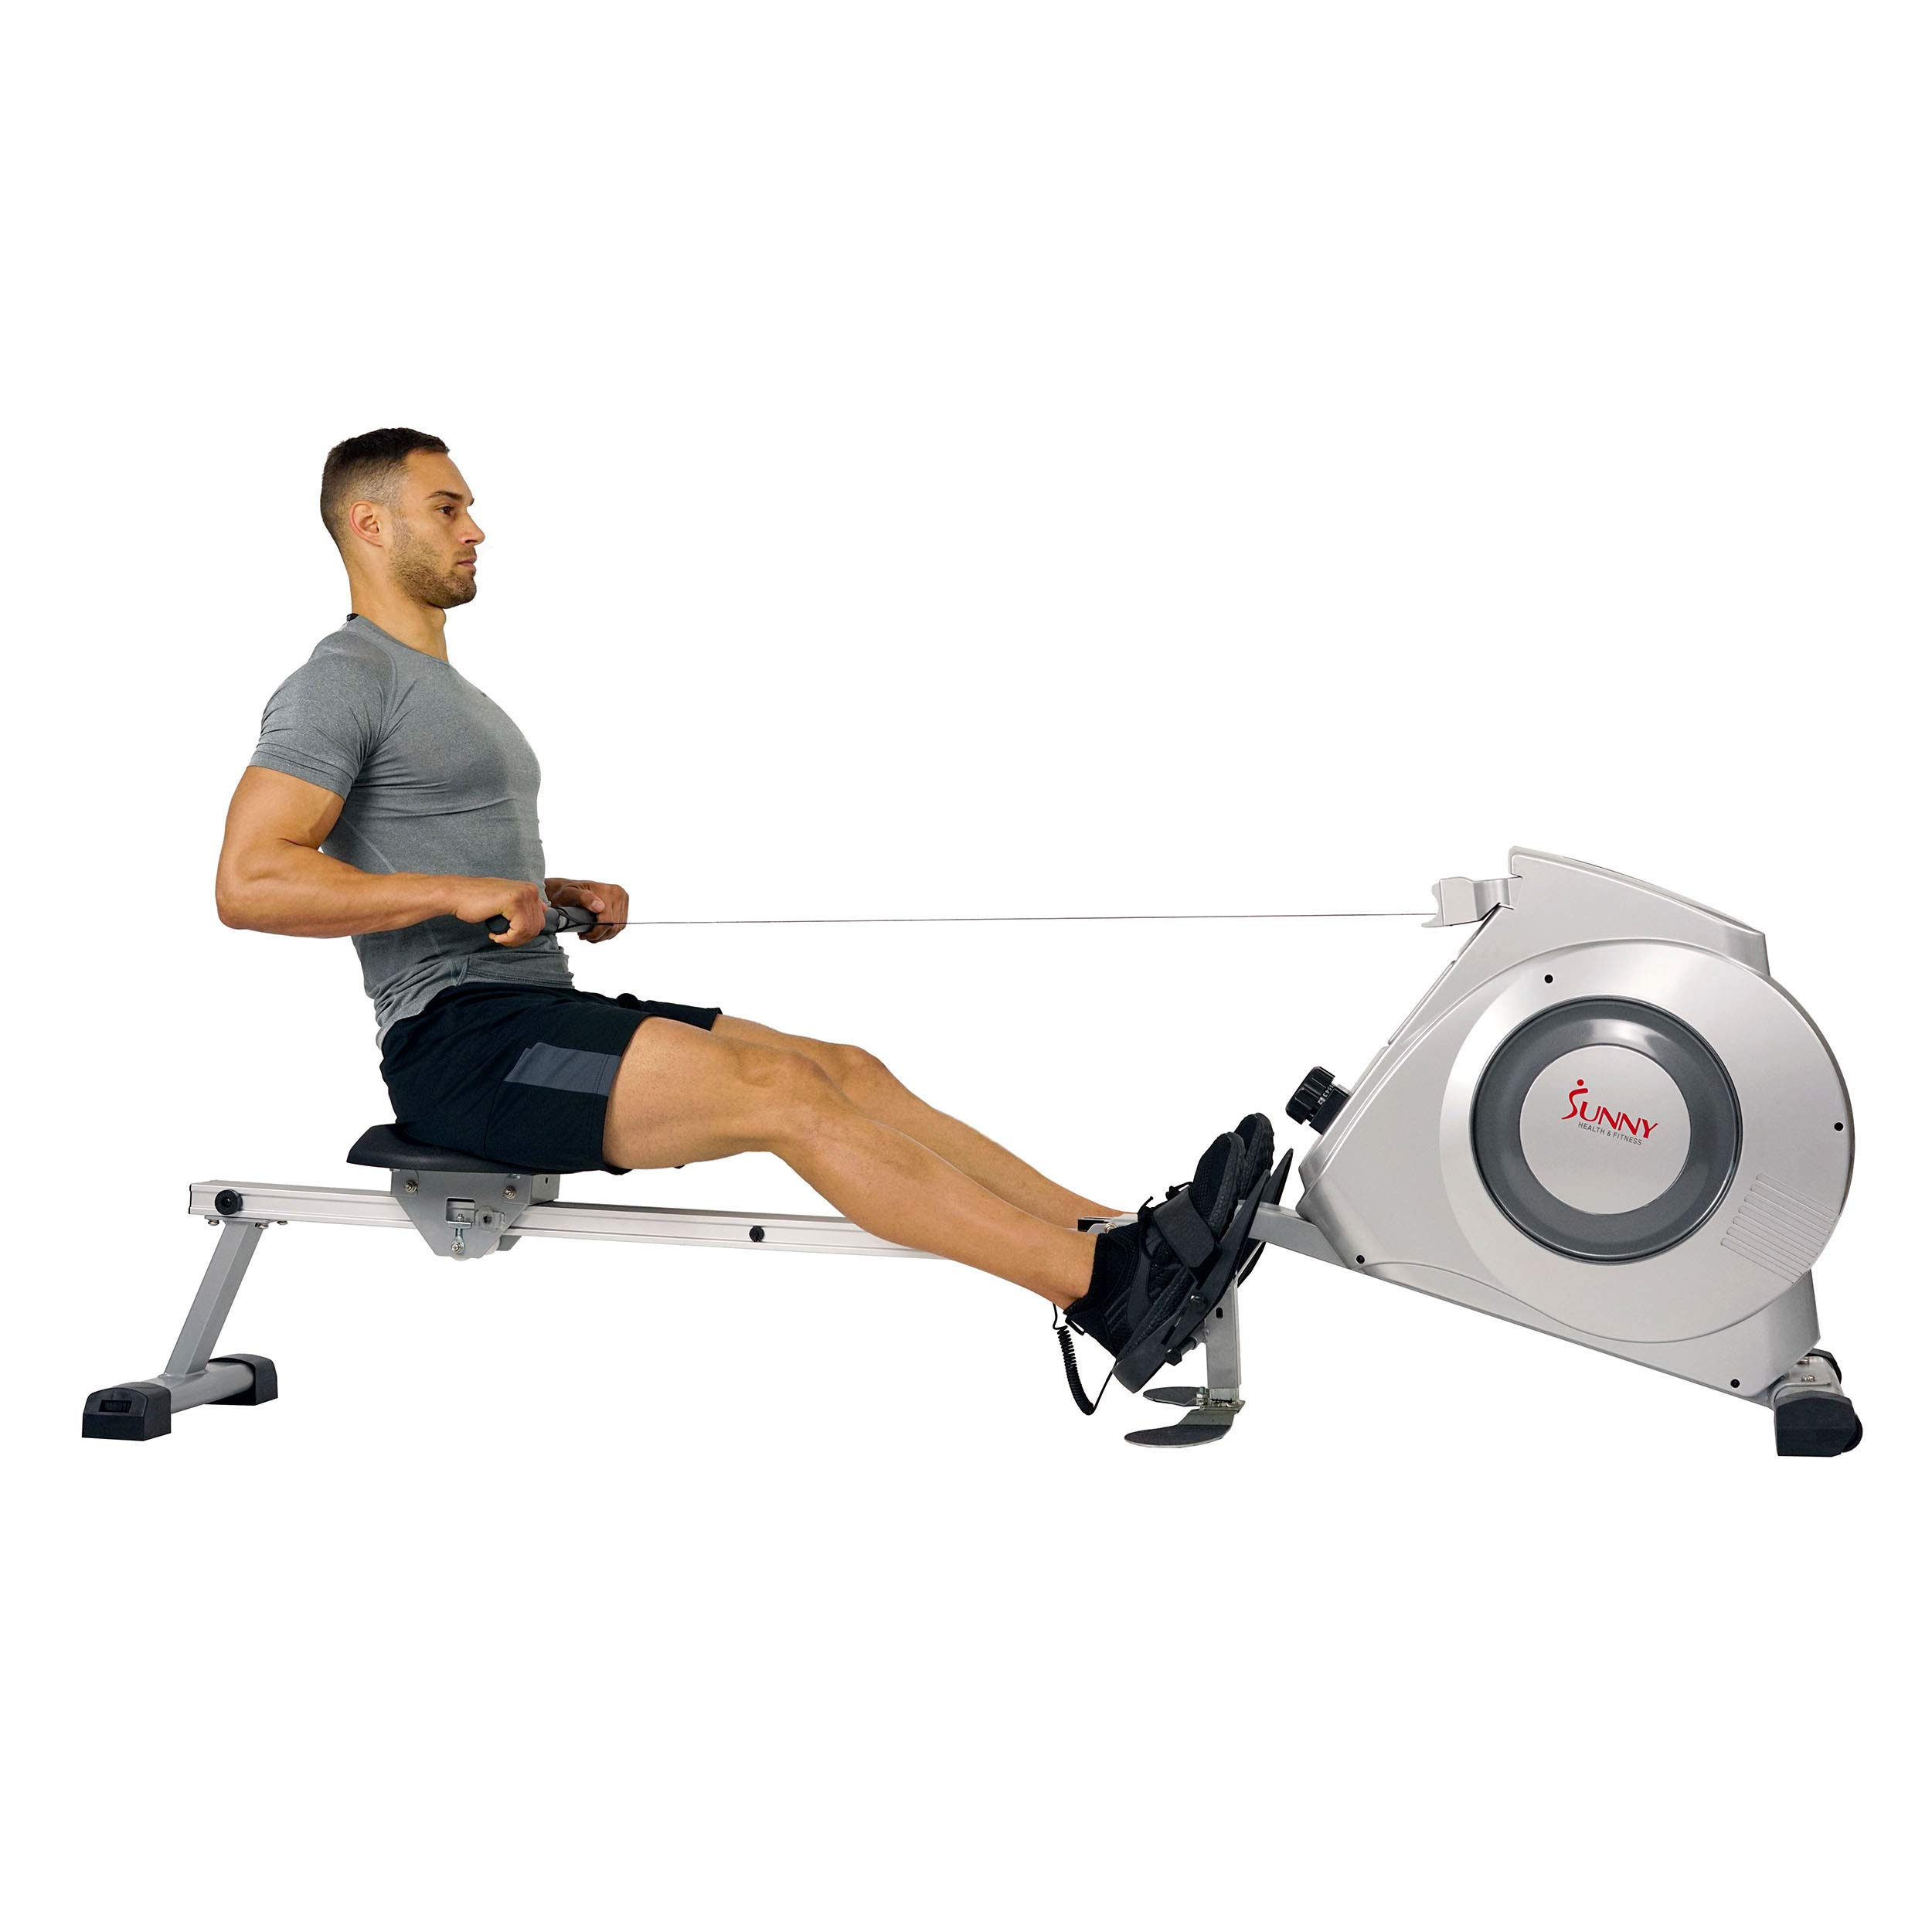 Sunny Health & Fitness Magnetic Rowing Machine w/ Digital Monitor, 300 LB Weight Capacity, Dual Function Multi-Exercise Foot Plates and Portability Wheels -  SF-RW5612 by Sunny Health & Fitness (Image #1)